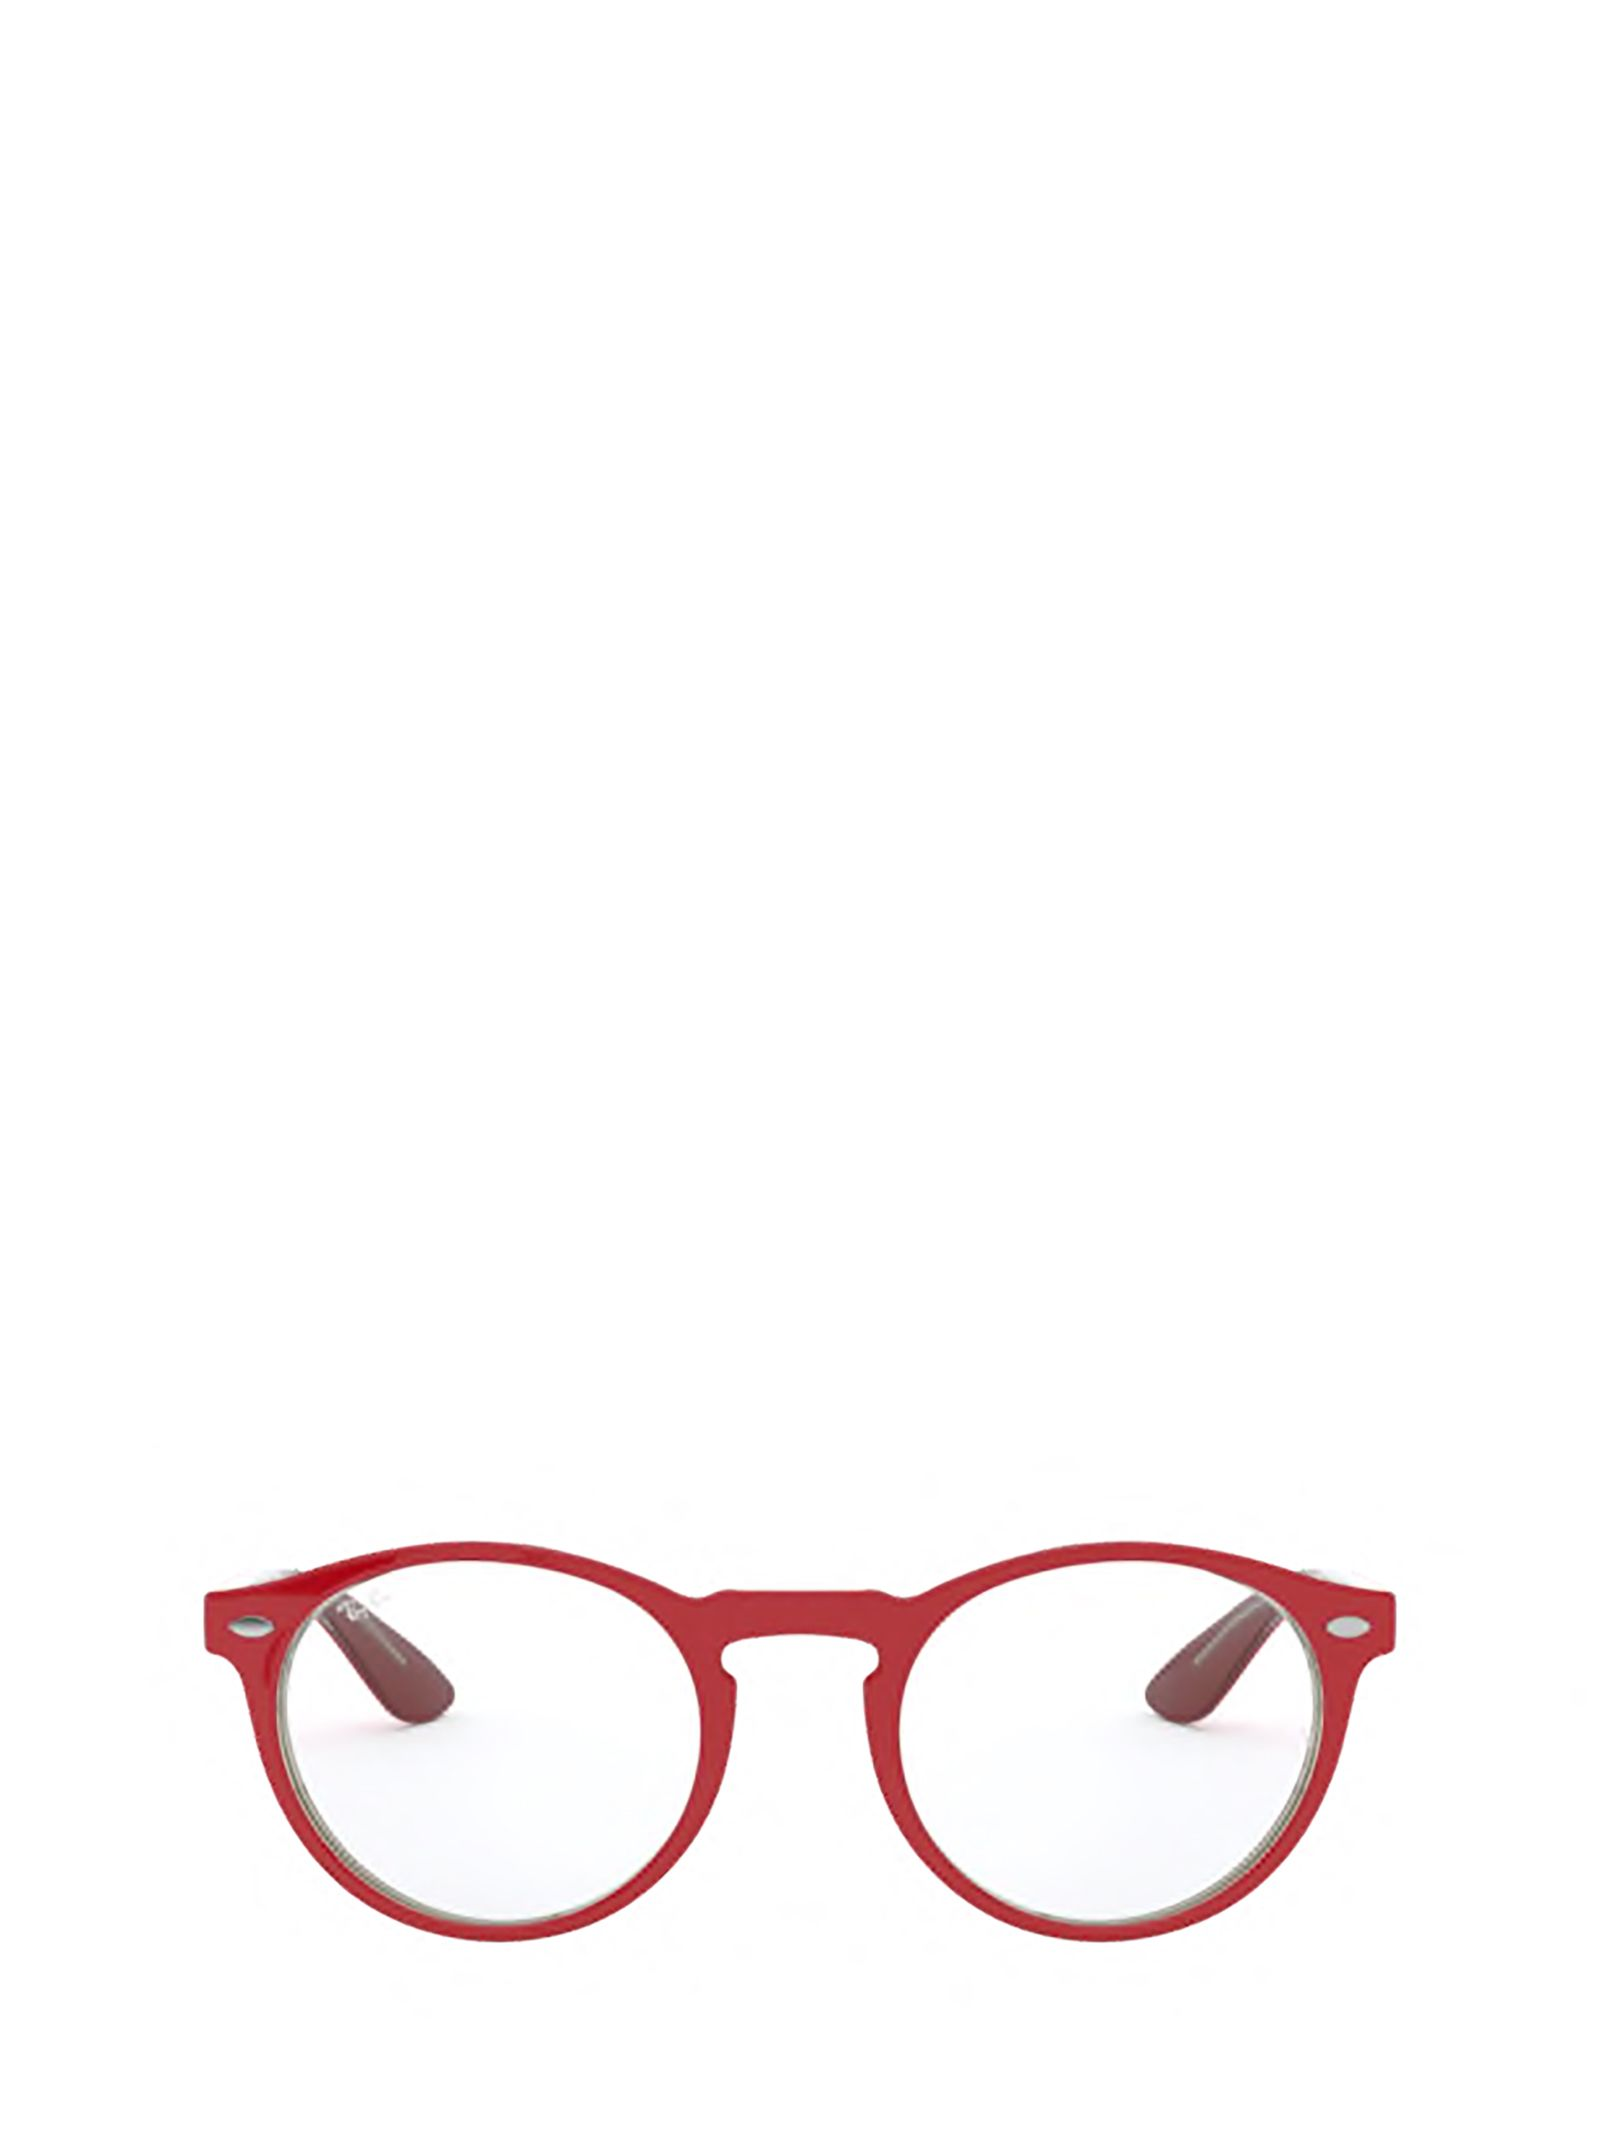 Ray Ban RAY BAN WOMEN'S RB52835987 RED METAL GLASSES